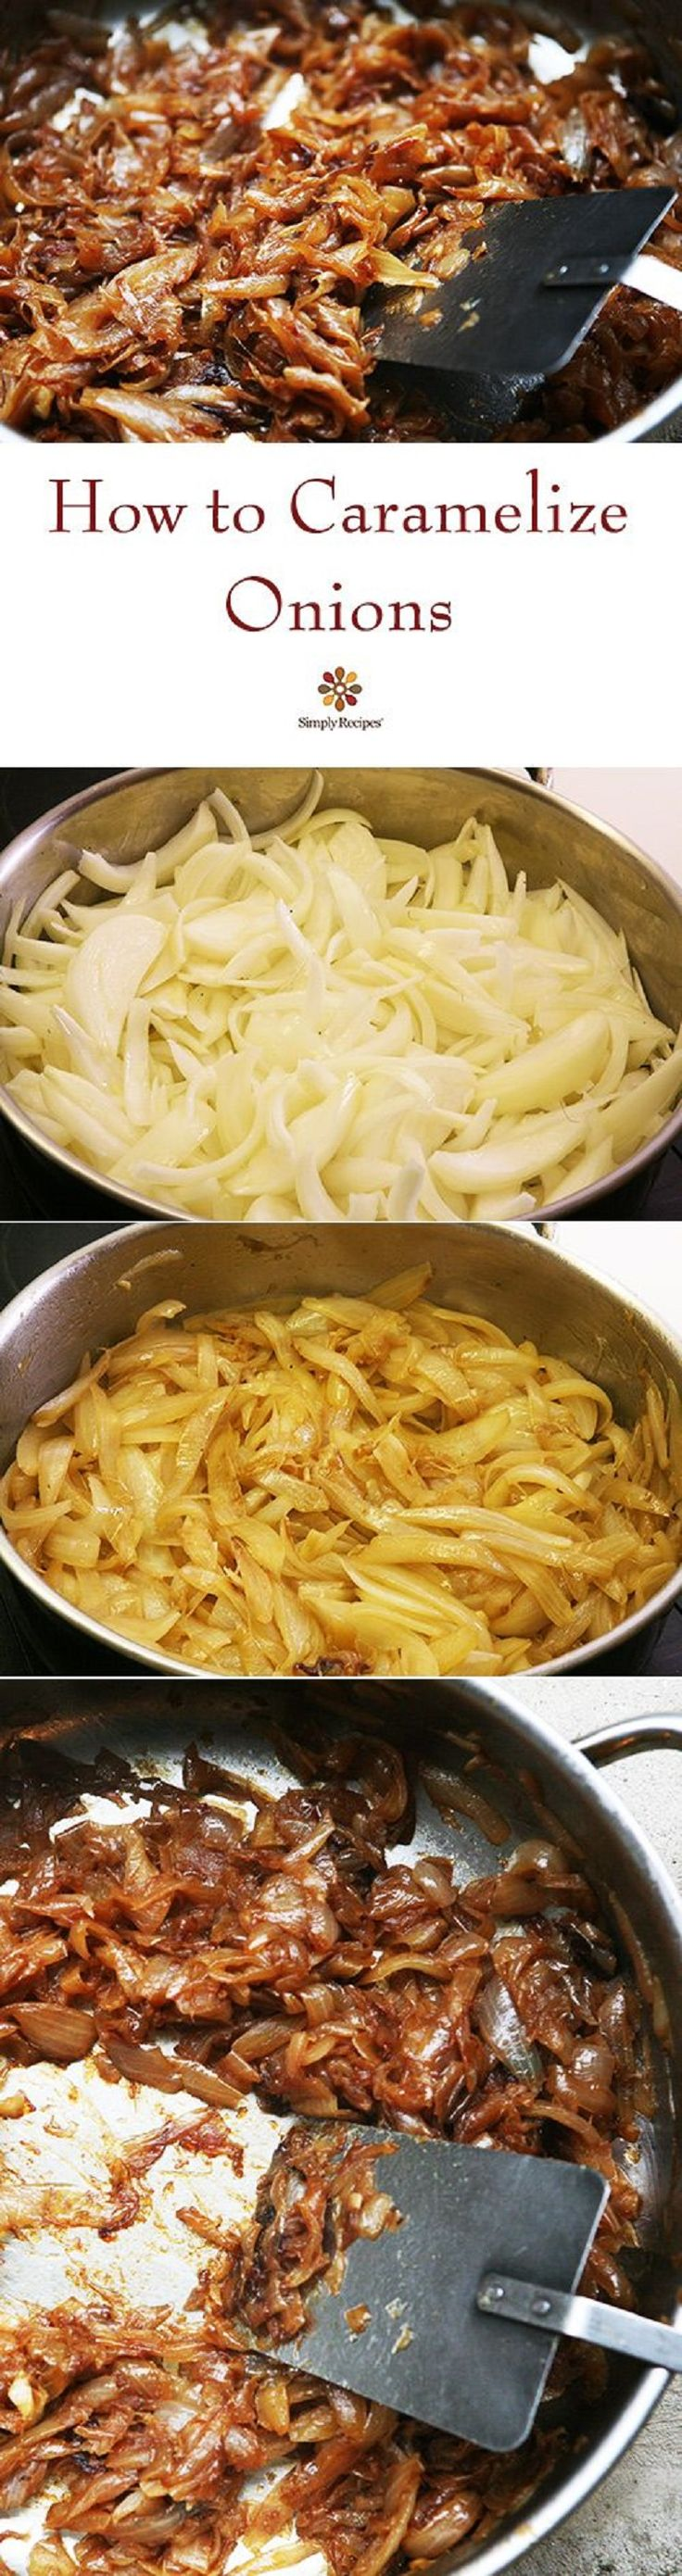 How to Caramelize Onions - 20 Cooking New Year's Resolutions to Accomplish in 2015 | GleamItUp